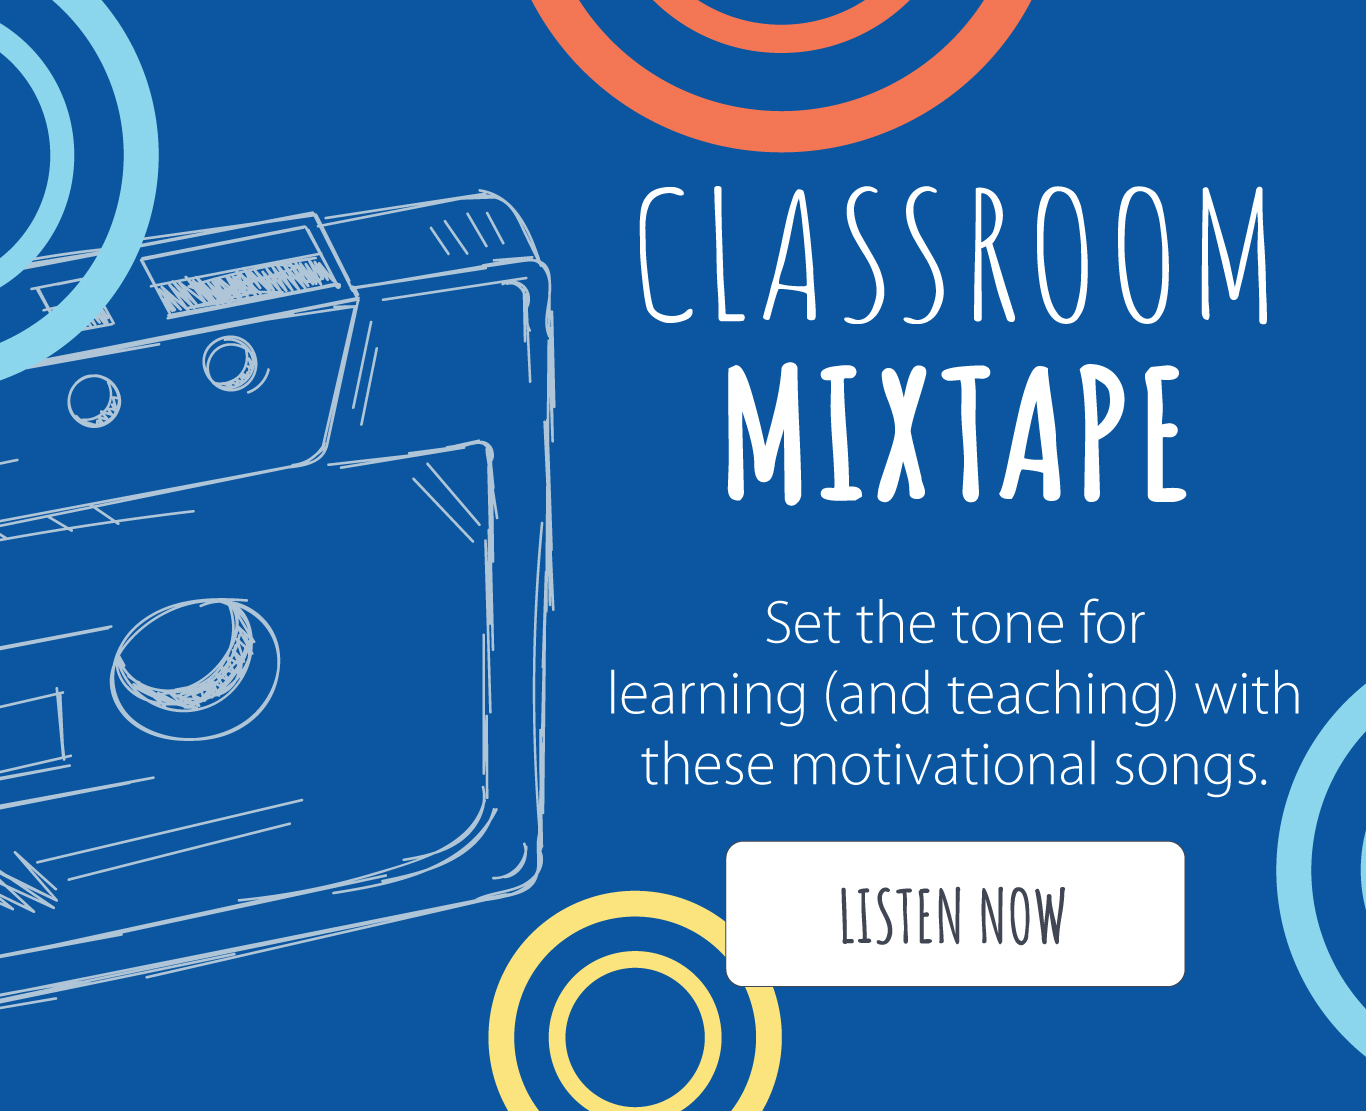 CLASSROOM MIXTAPE – Set the tone for learning (and teaching) with these motivational songs. - LISTEN NOW